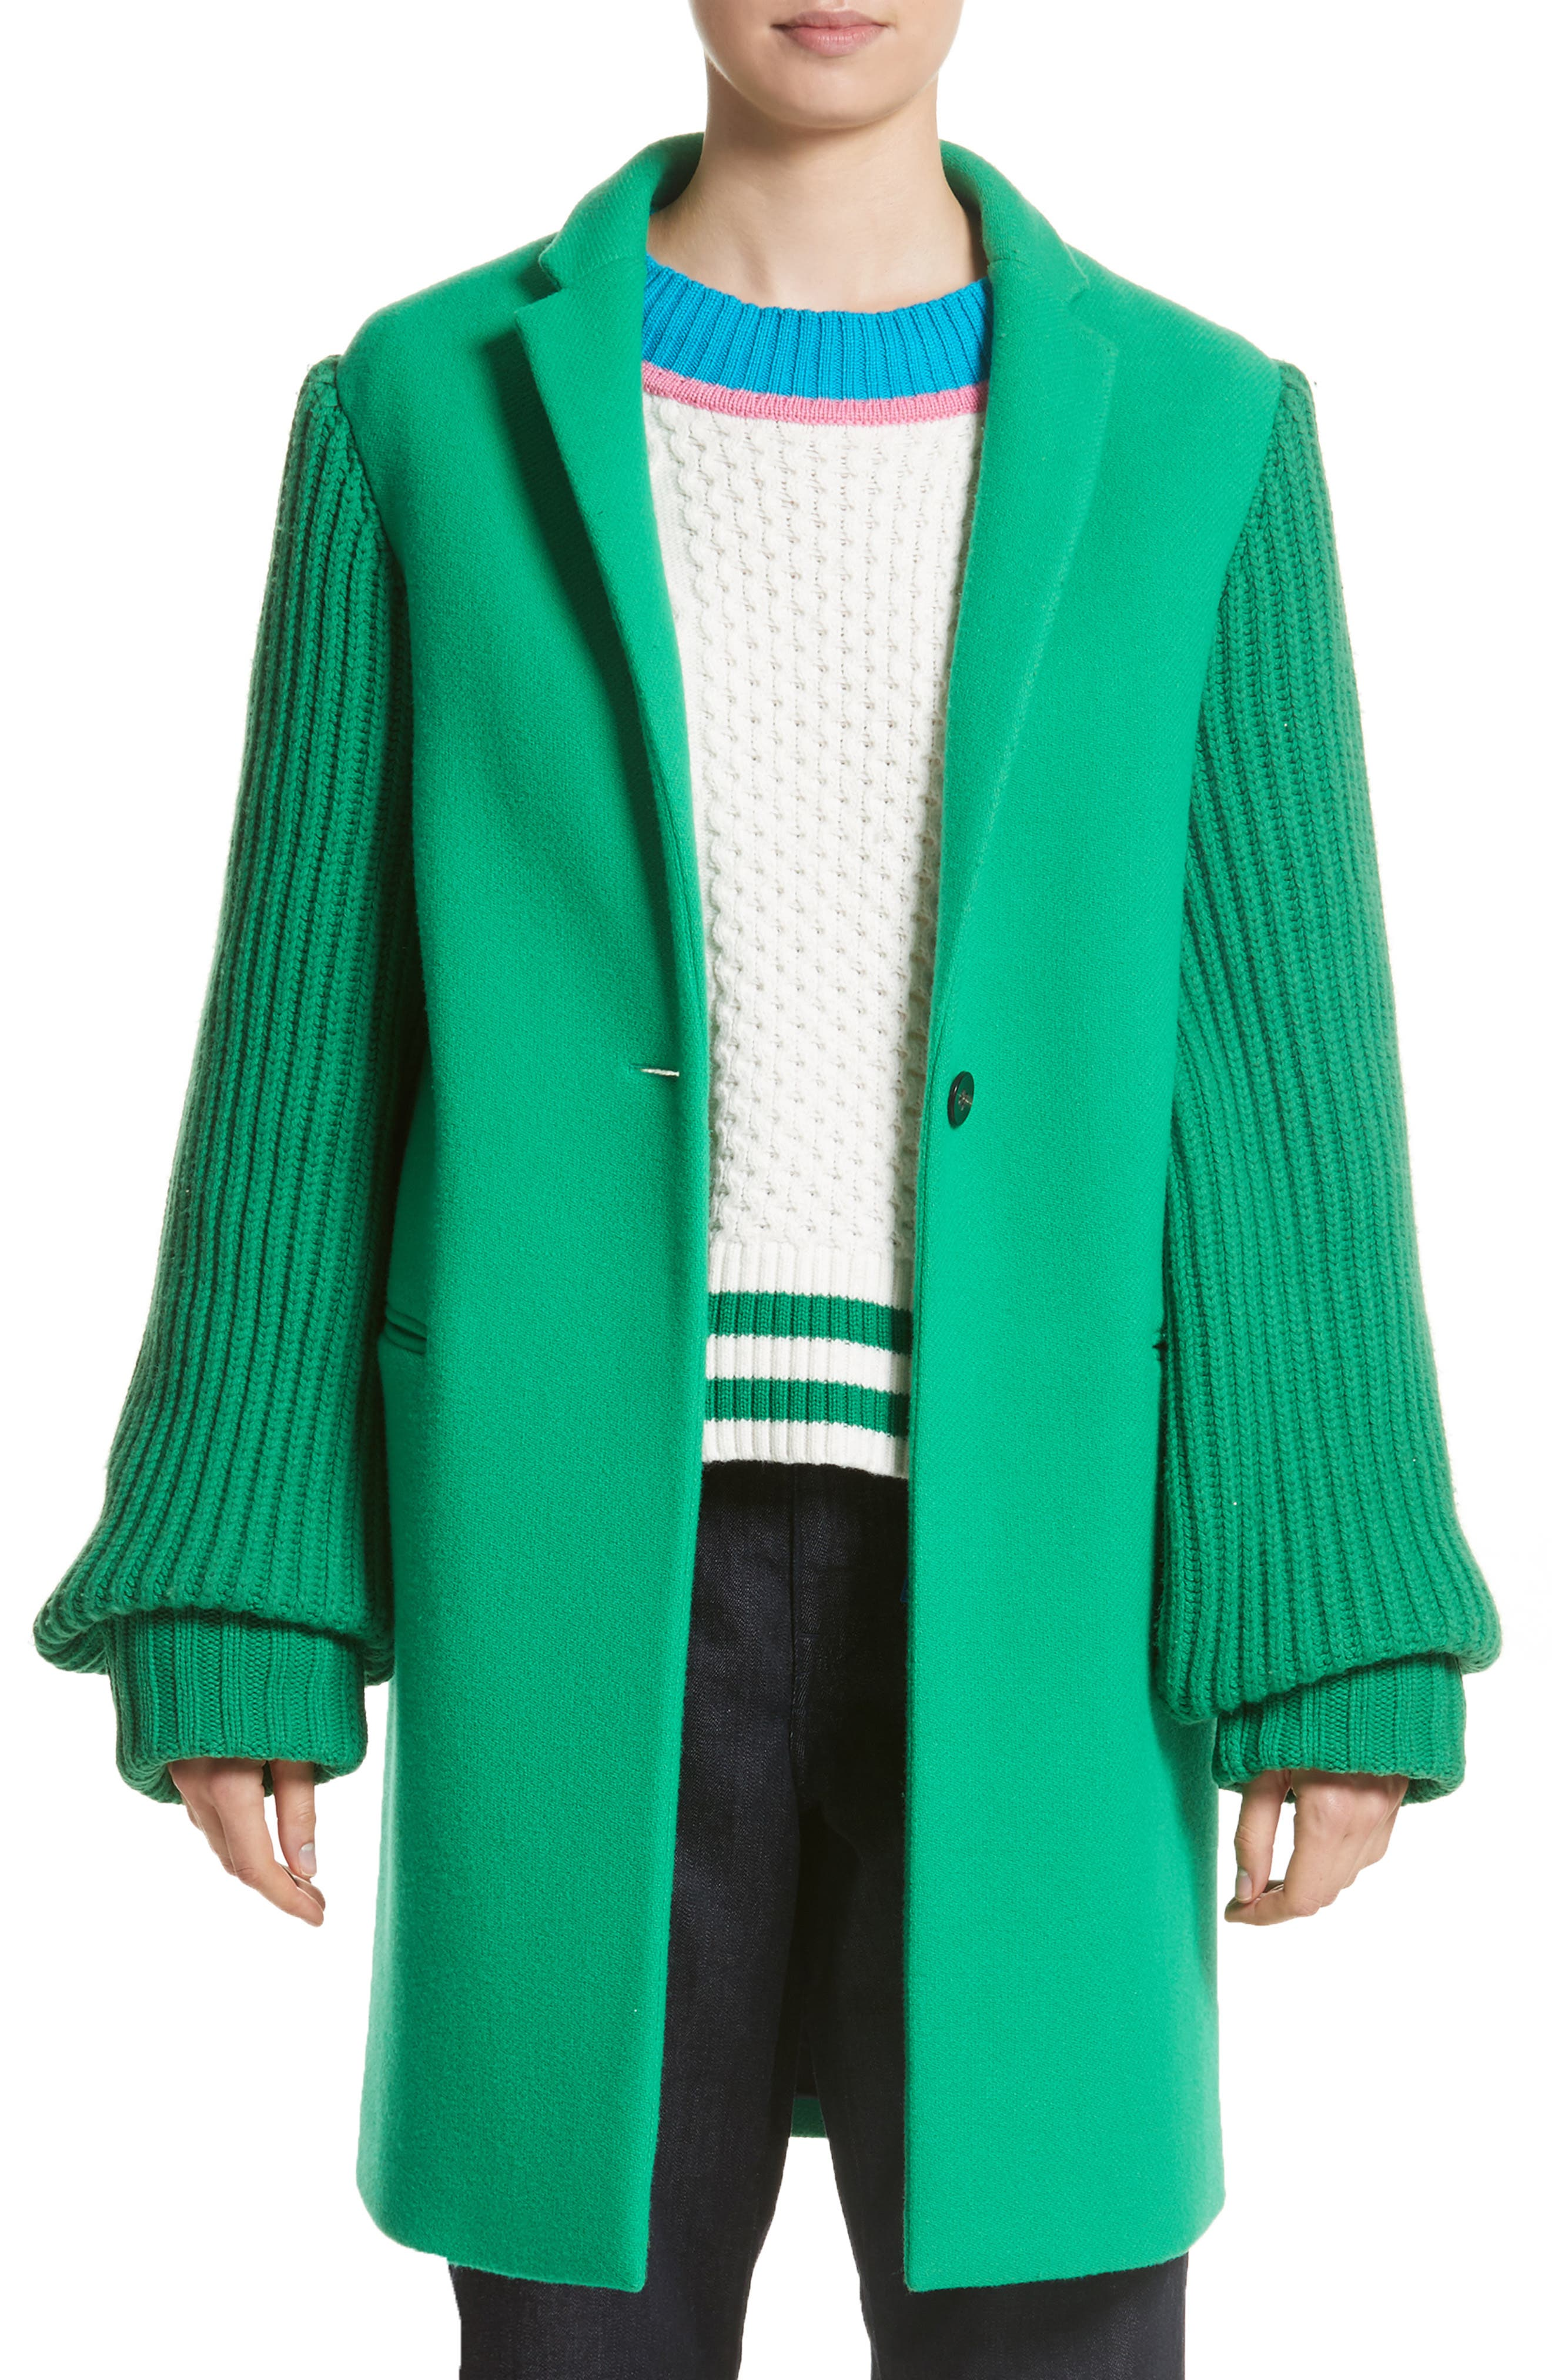 Ask Me Later Embroidered Knit Sleeve Coat,                         Main,                         color, Green